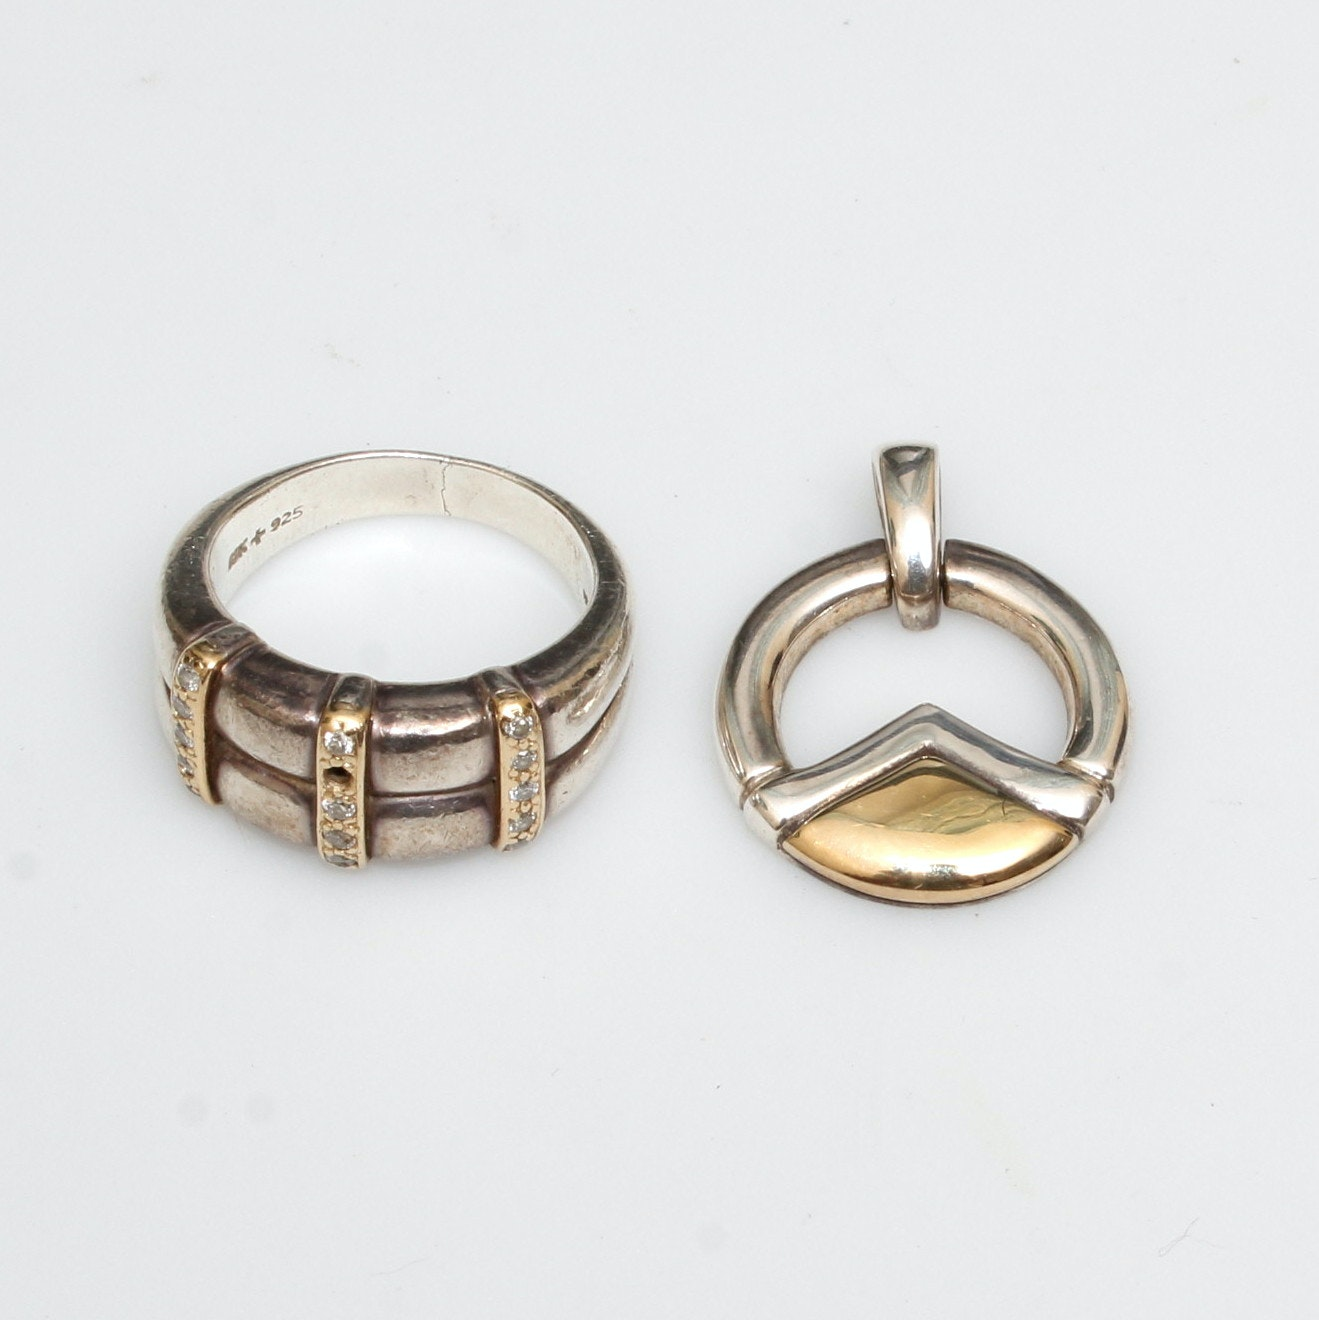 Lorenzo Sterling Ring and Pendant with 18K Gold Details